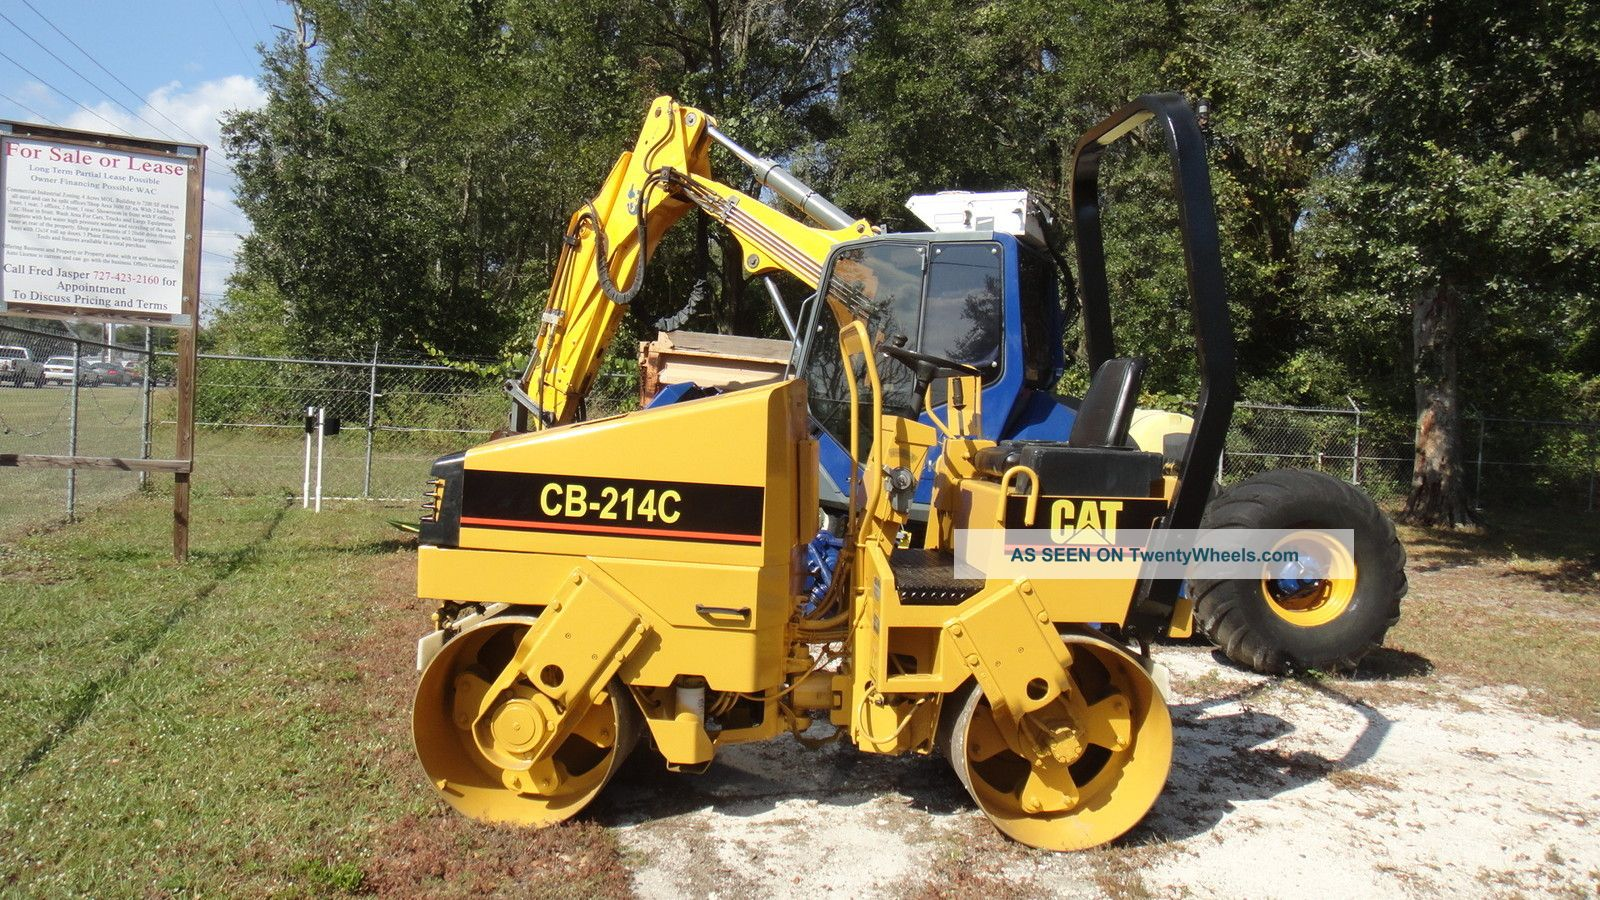 Caterpillar Cb214c Vibratory Roller,  Double Drum,  Low Hrs Compactors & Rollers - Riding photo